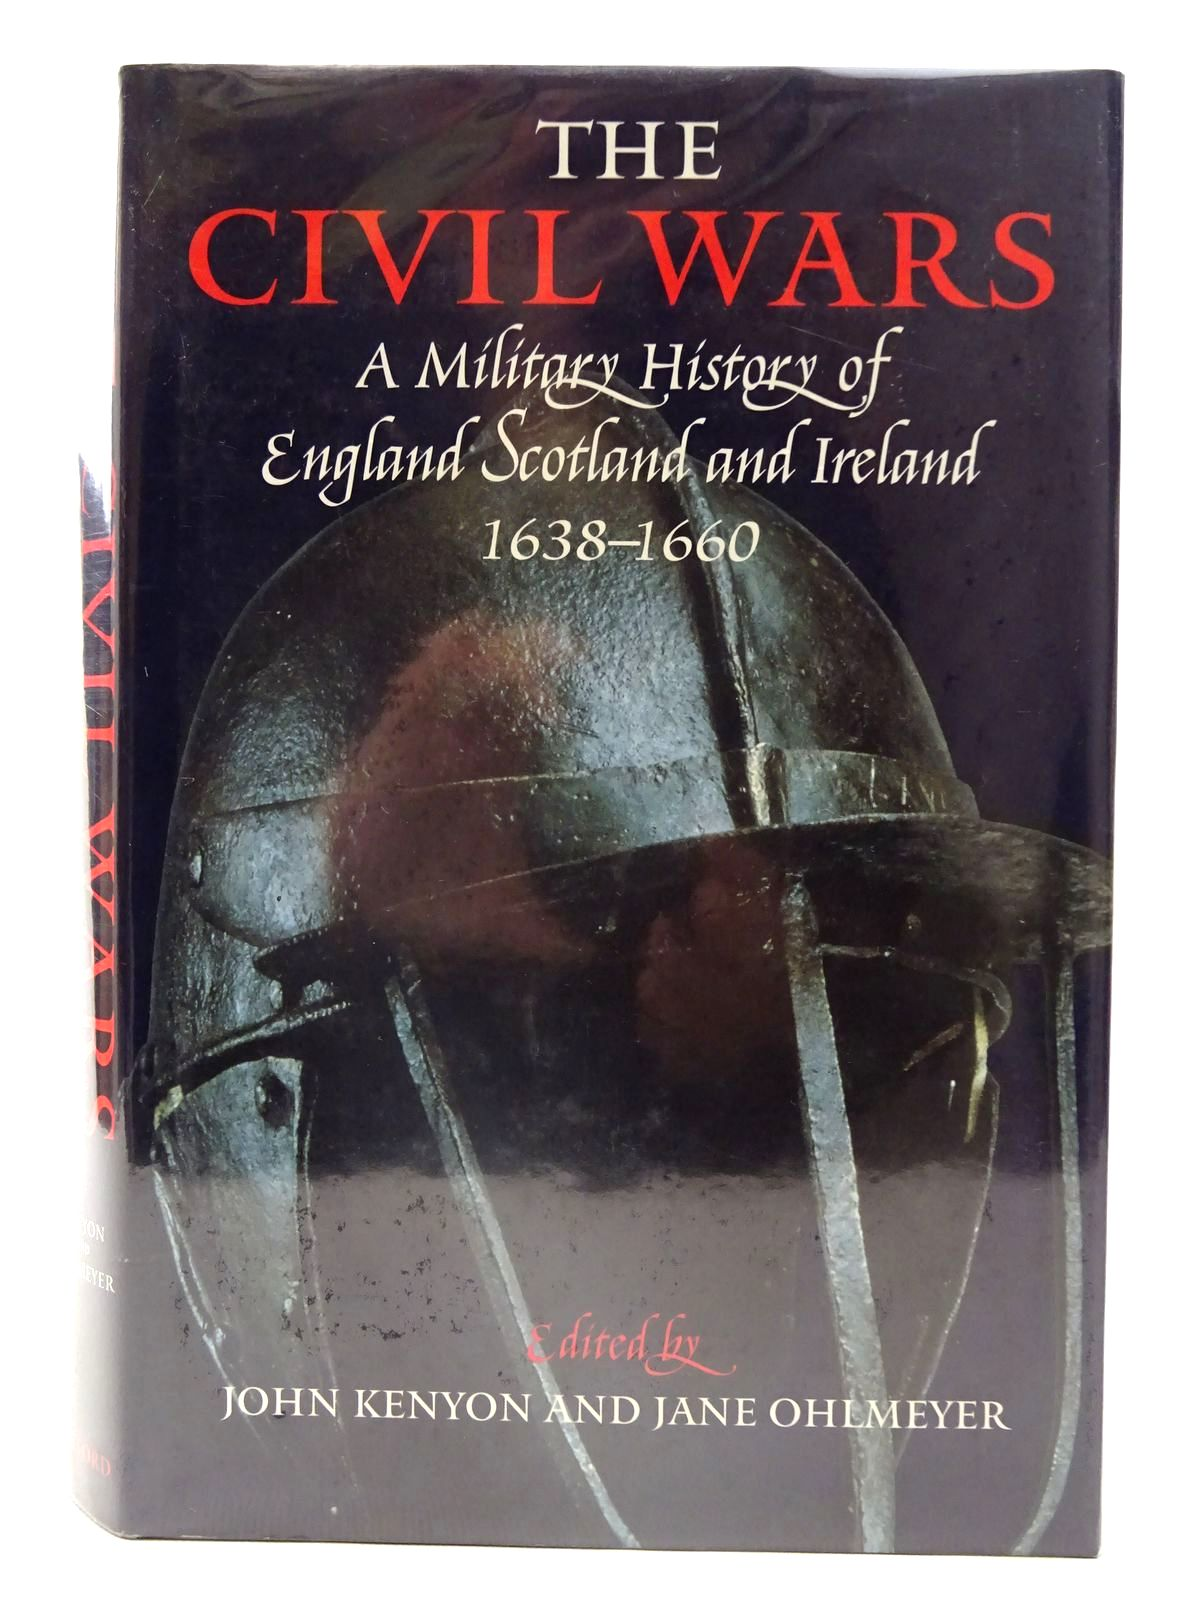 Photo of THE CIVIL WARS A MILITARY HISTORY OF ENGLAND, SCOTLAND, AND IRELAND 1638-1660 written by Kenyon, John Ohlmeyer, Jane published by Oxford University Press (STOCK CODE: 2126201)  for sale by Stella & Rose's Books